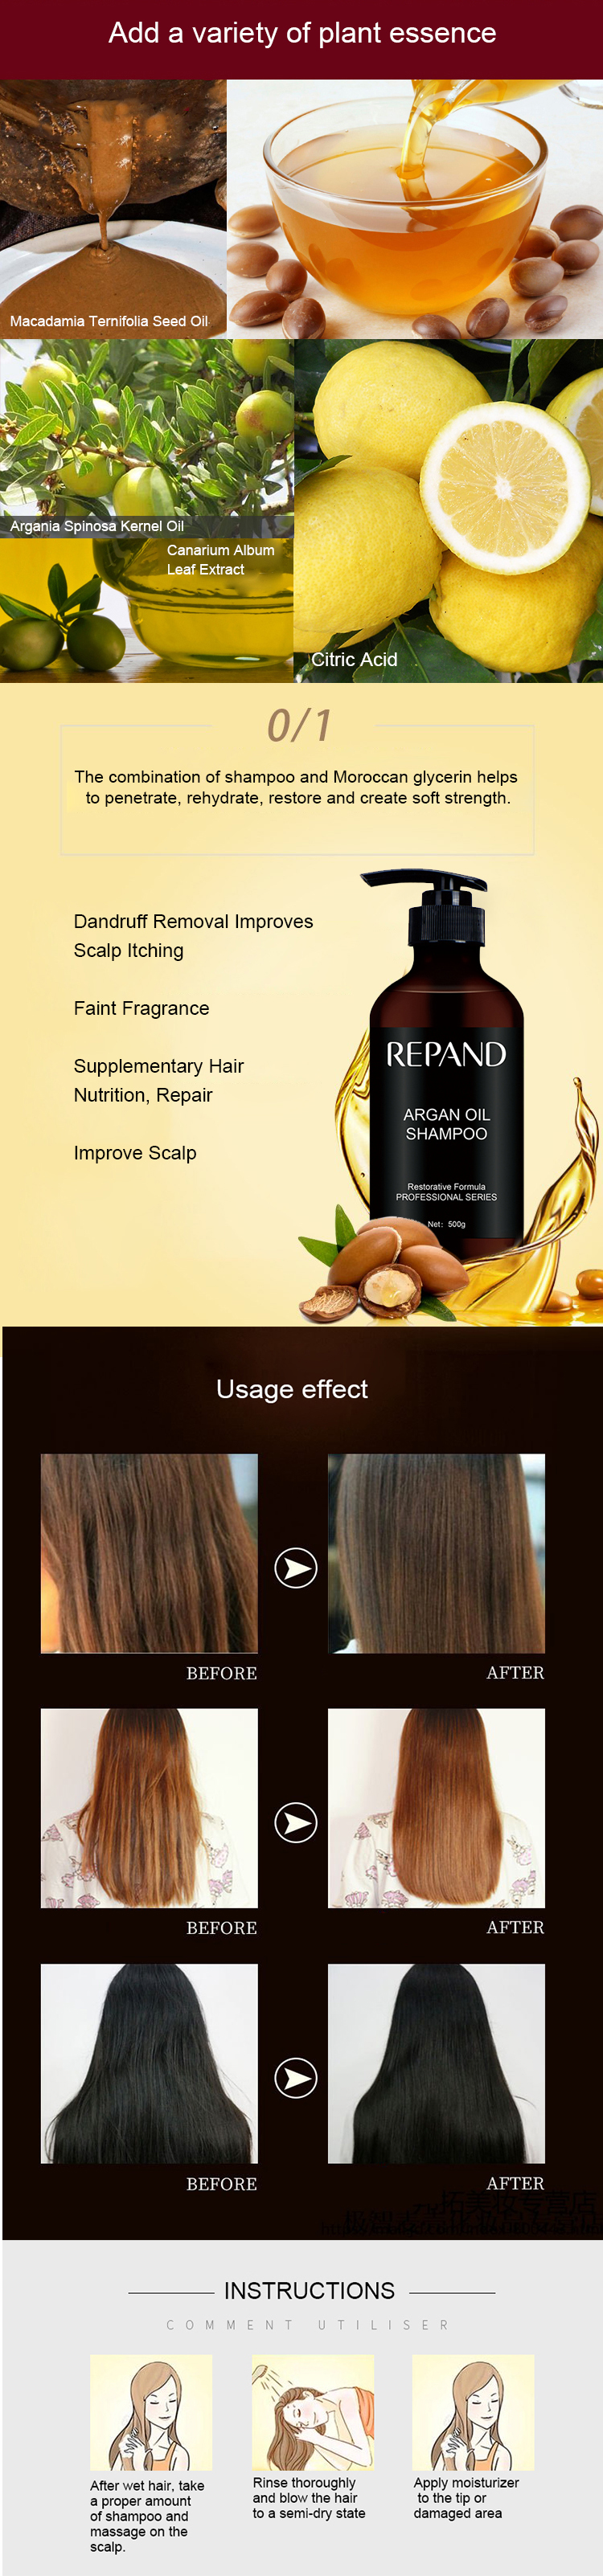 Private label natural products argan oil hair shampoo